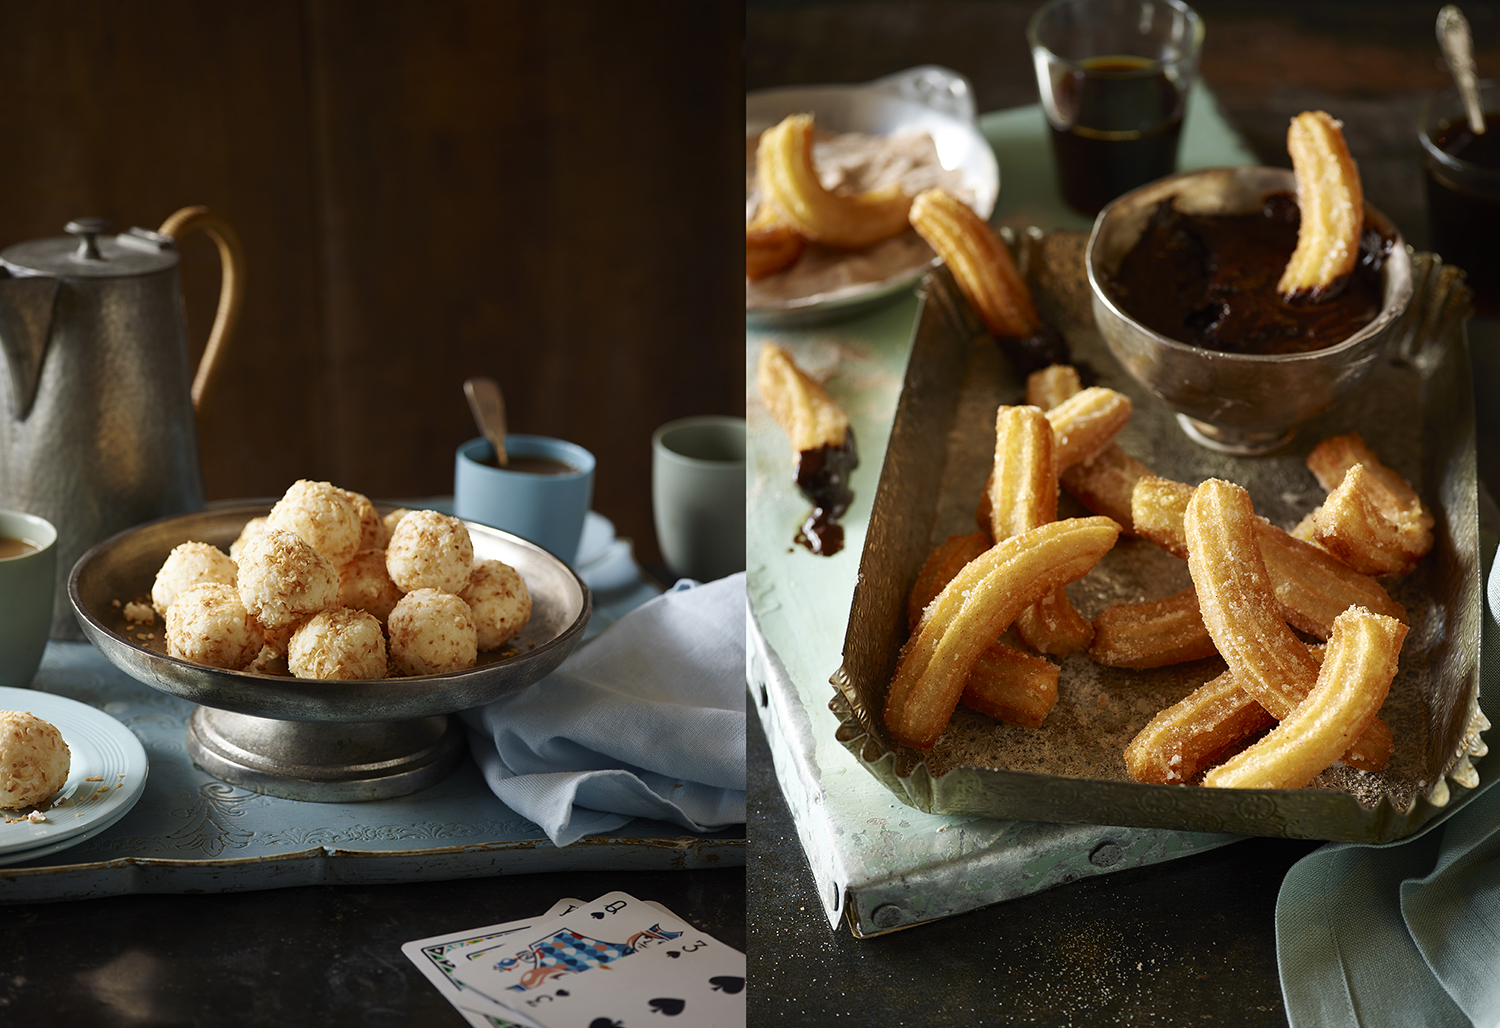 Sainsbury's Baking Book Coconut Bites Photo by Food Photographer Lauren Mclean